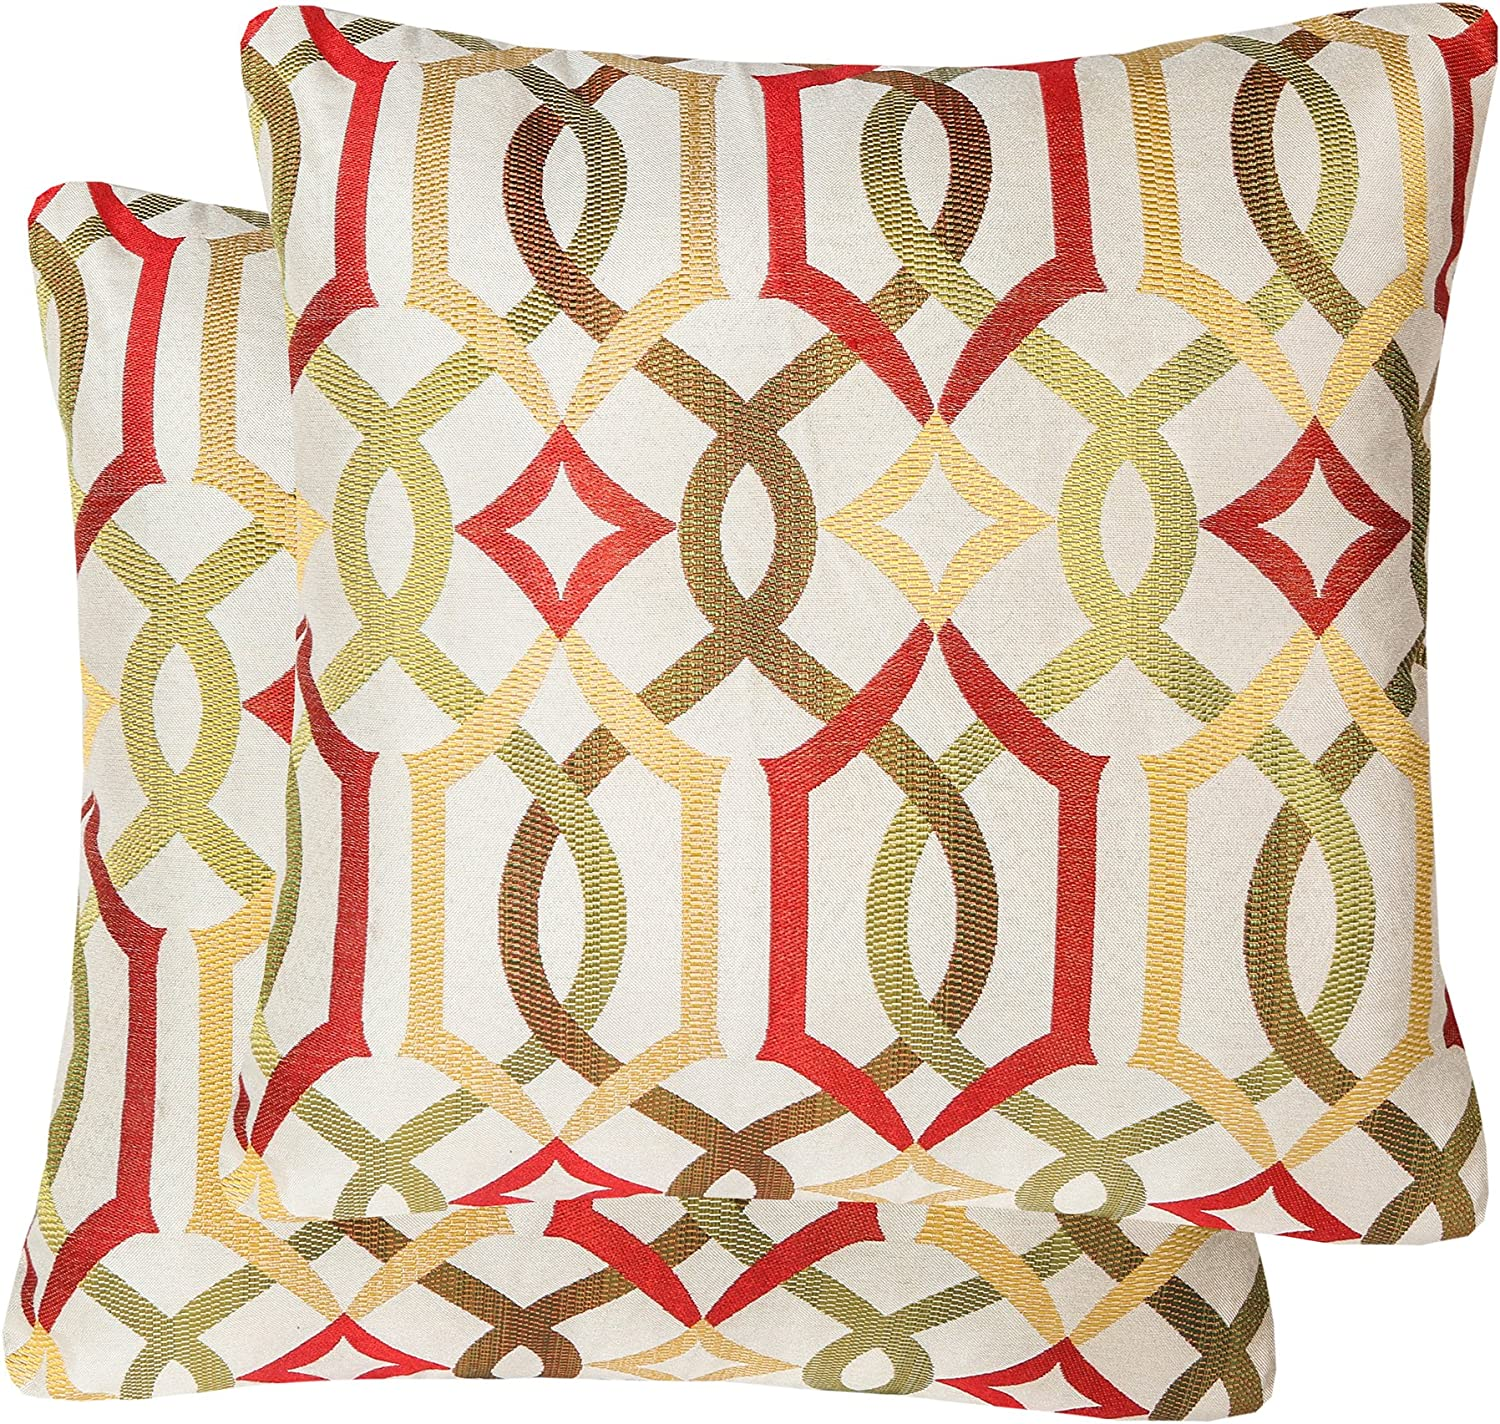 YUKORE Product Pack of Free Shipping New 2 Jacquard Geometric Cases Links Pillow Throw Dec